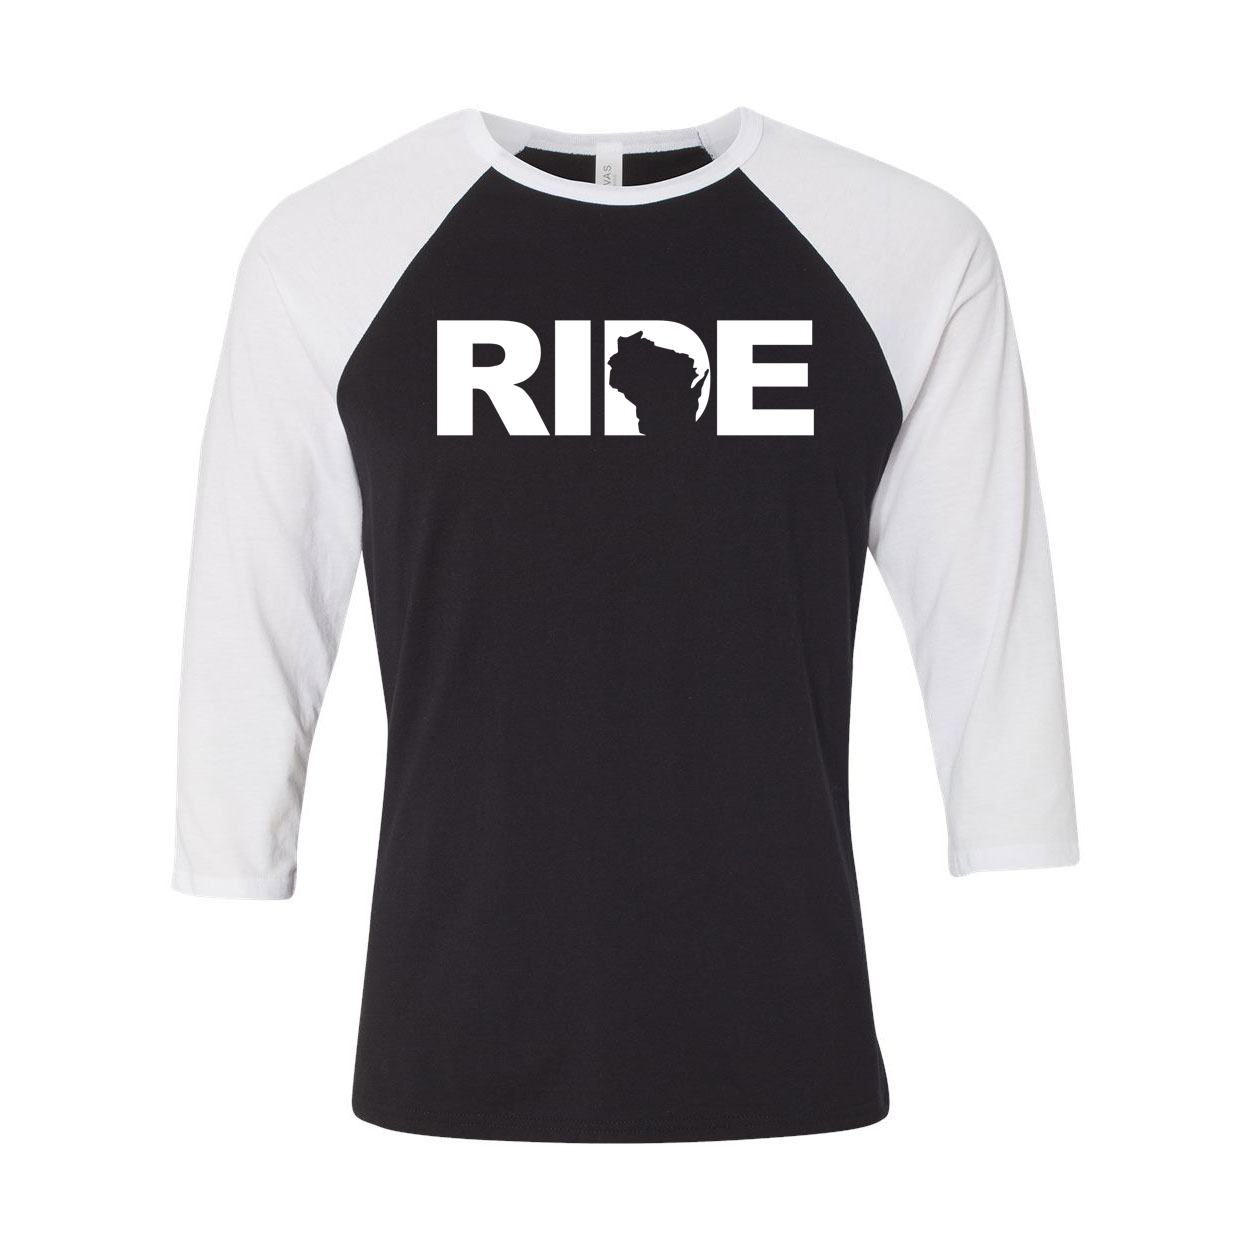 Ride Wisconsin Classic Raglan Shirt Black/White (White Logo)